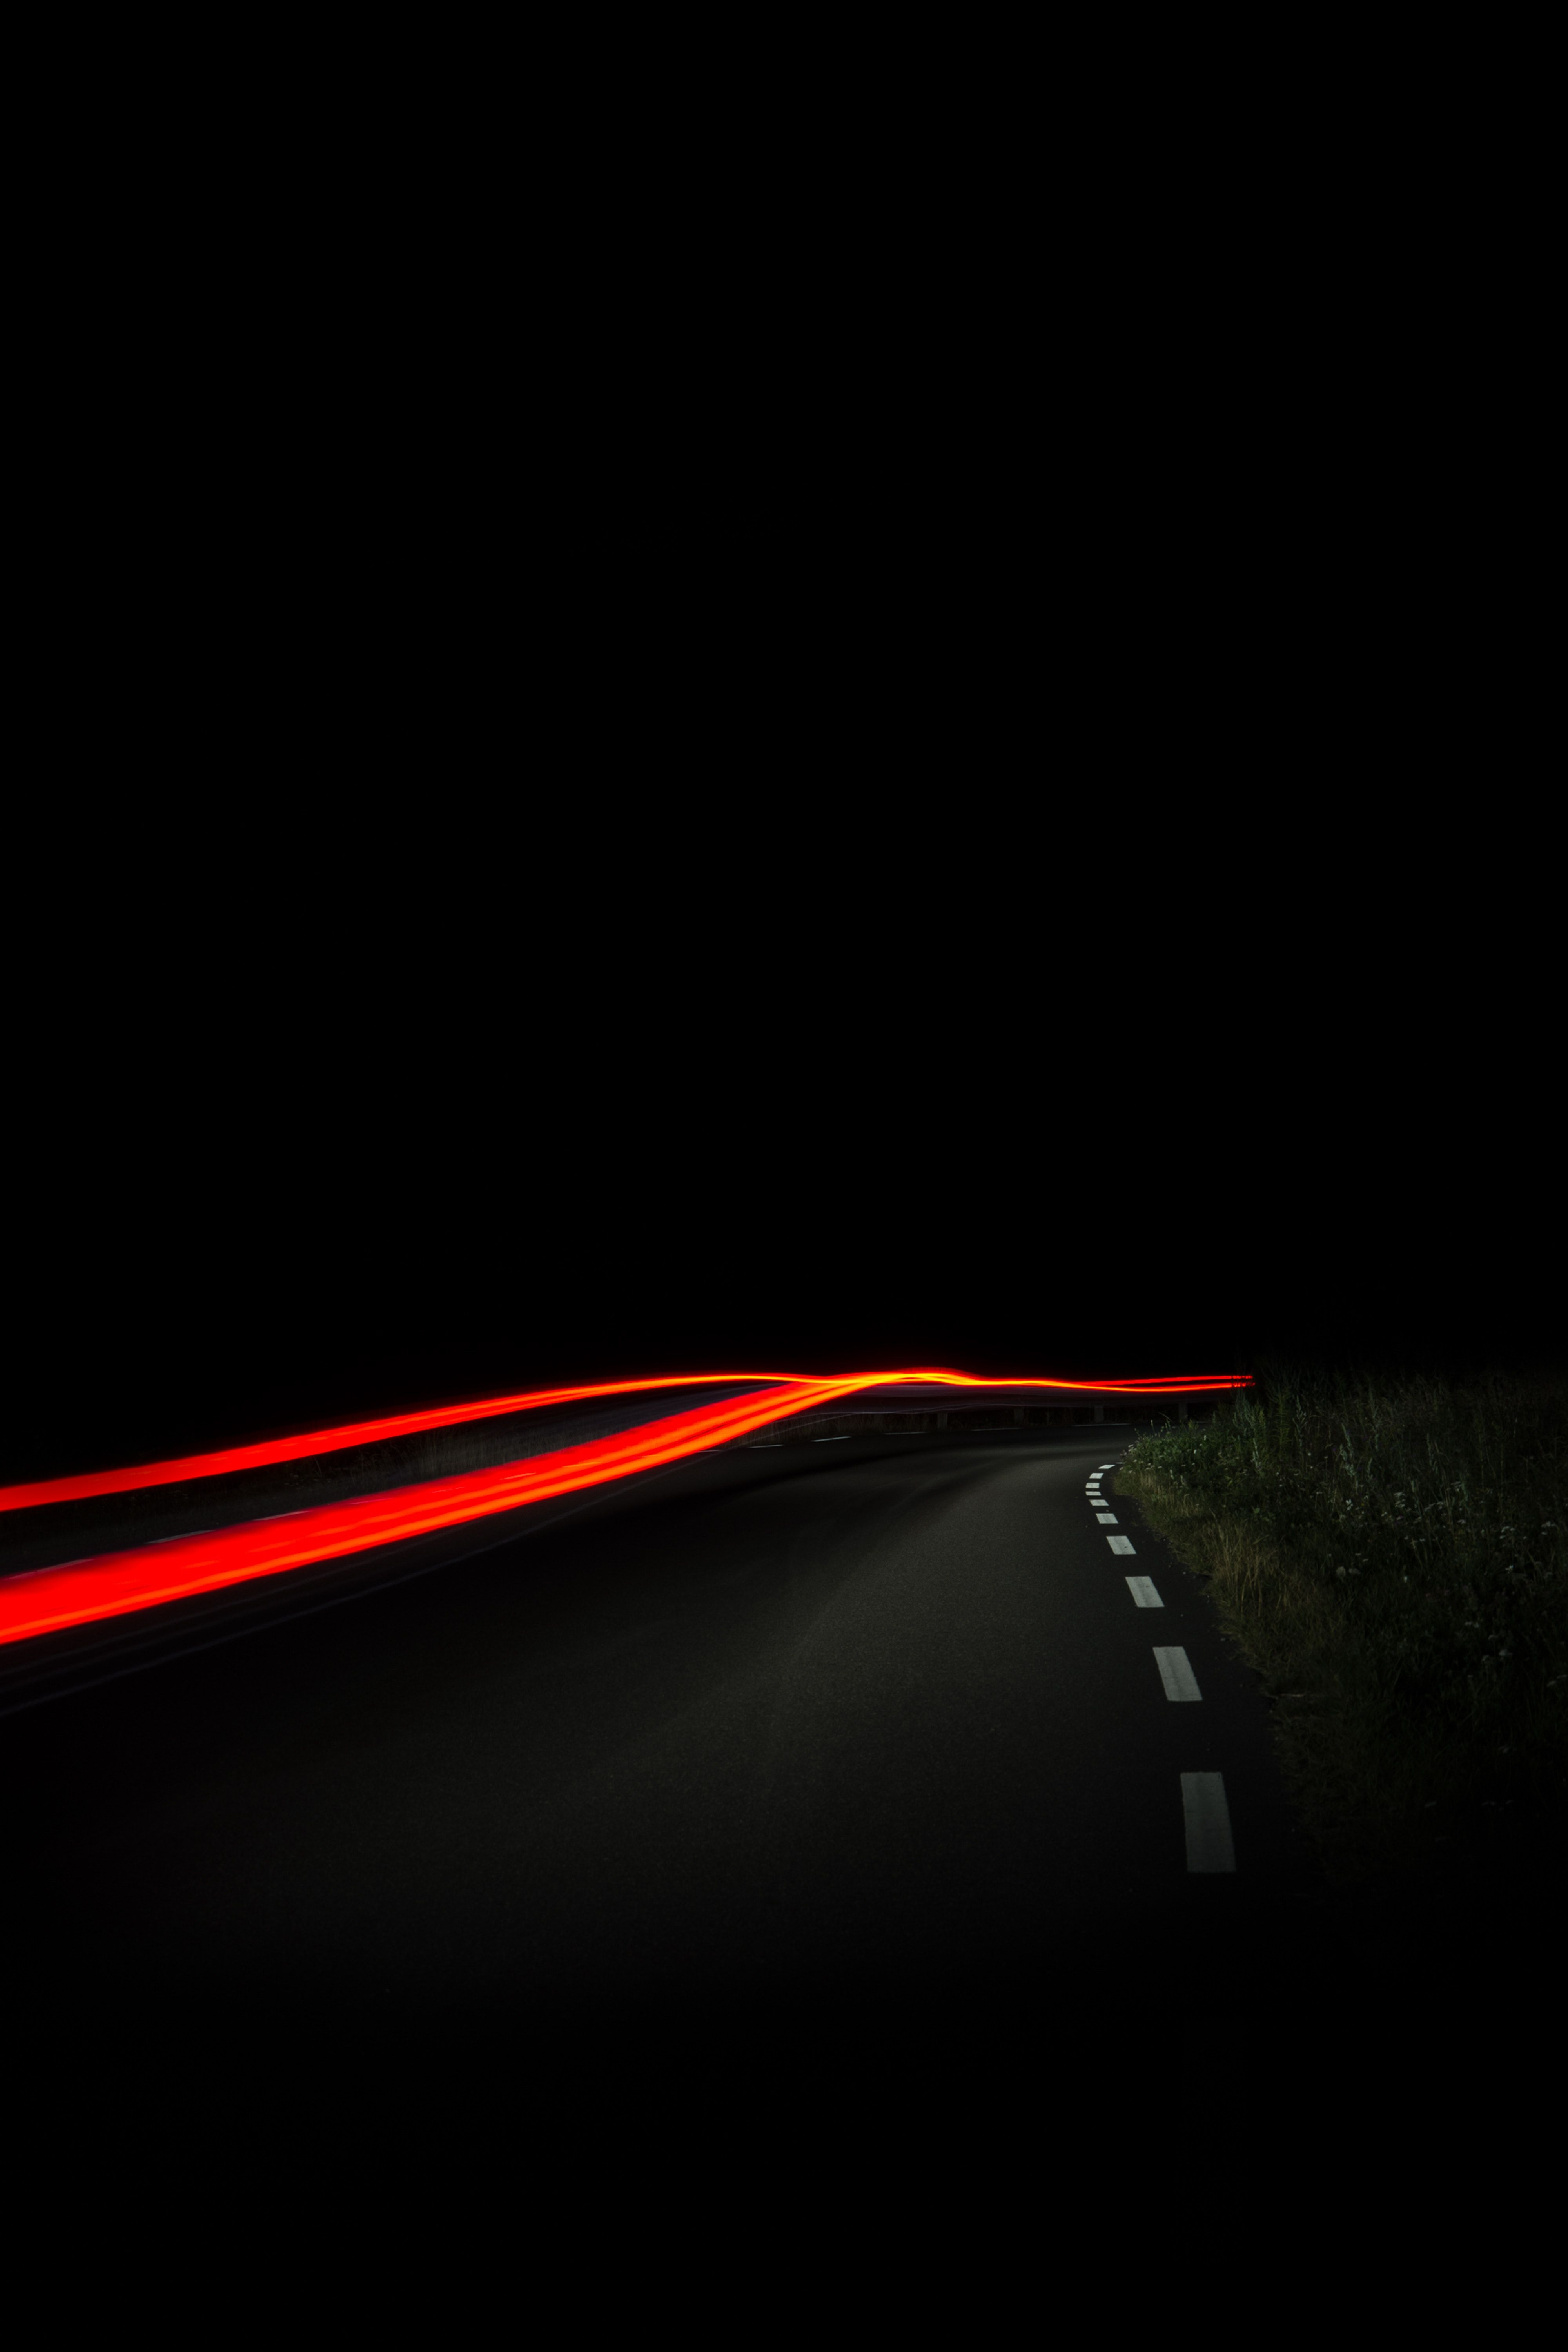 A blurry nighttime shot of a road in Åsa, with red car